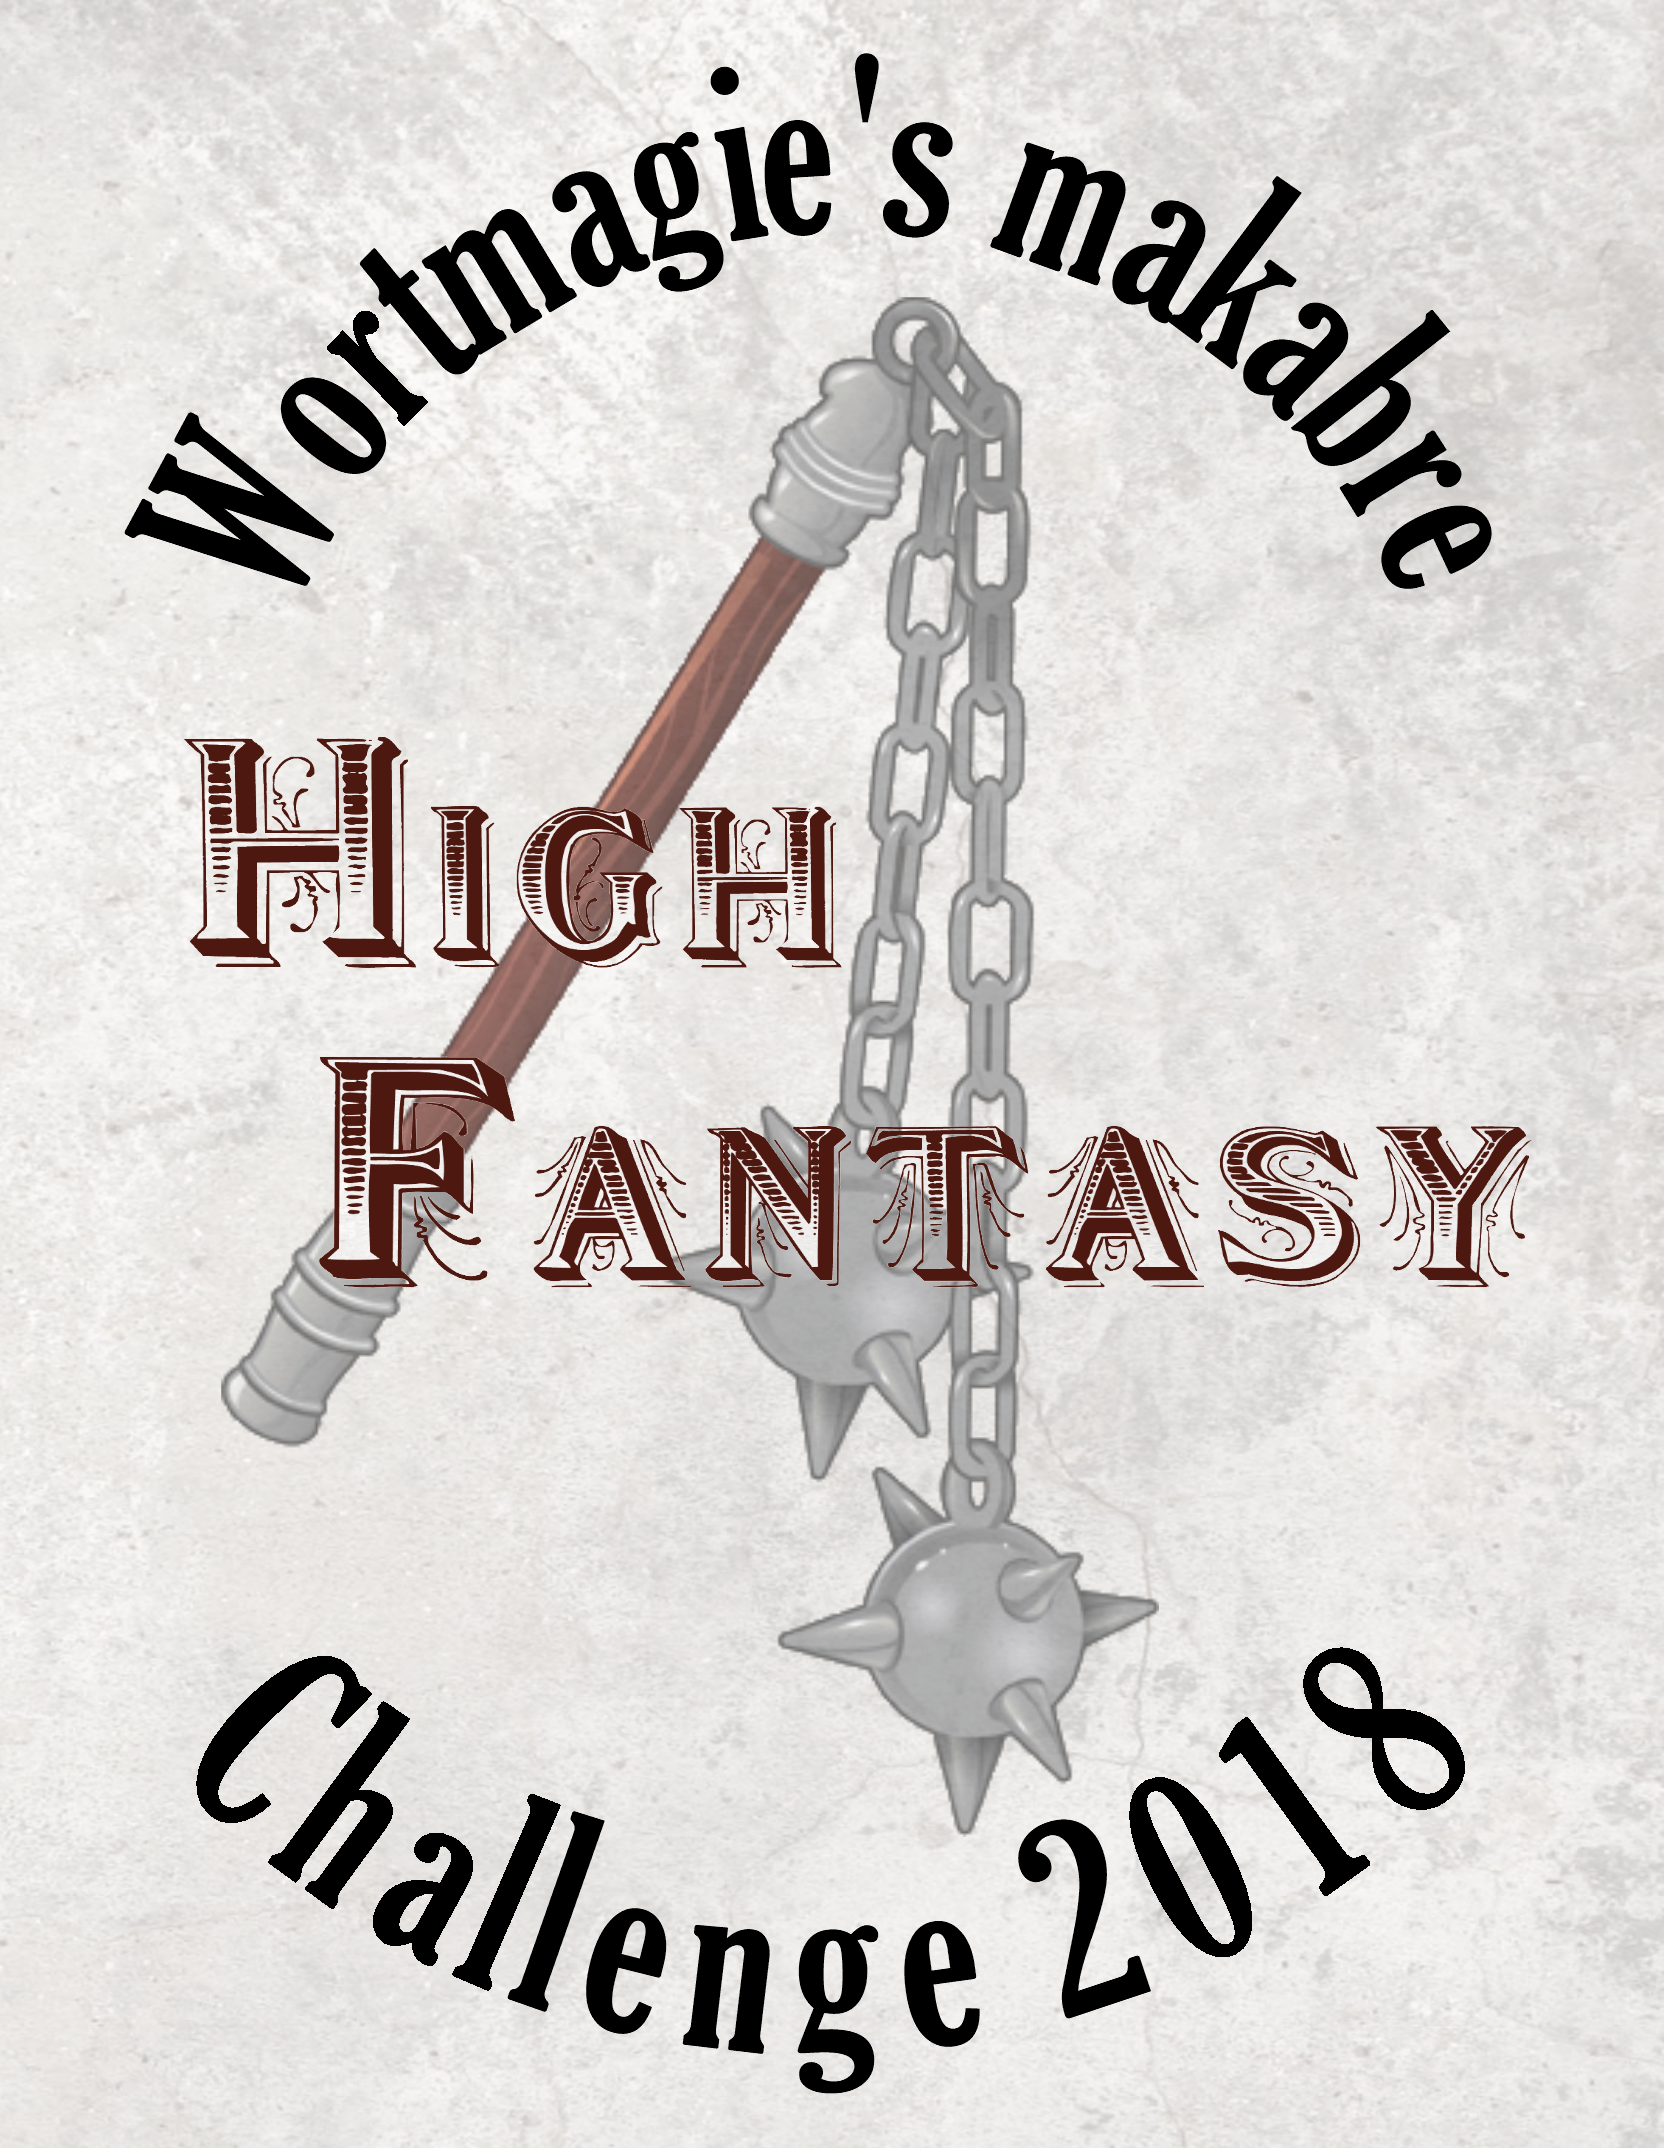 Wortmagie's makabre High Fantasy Challenge 2018